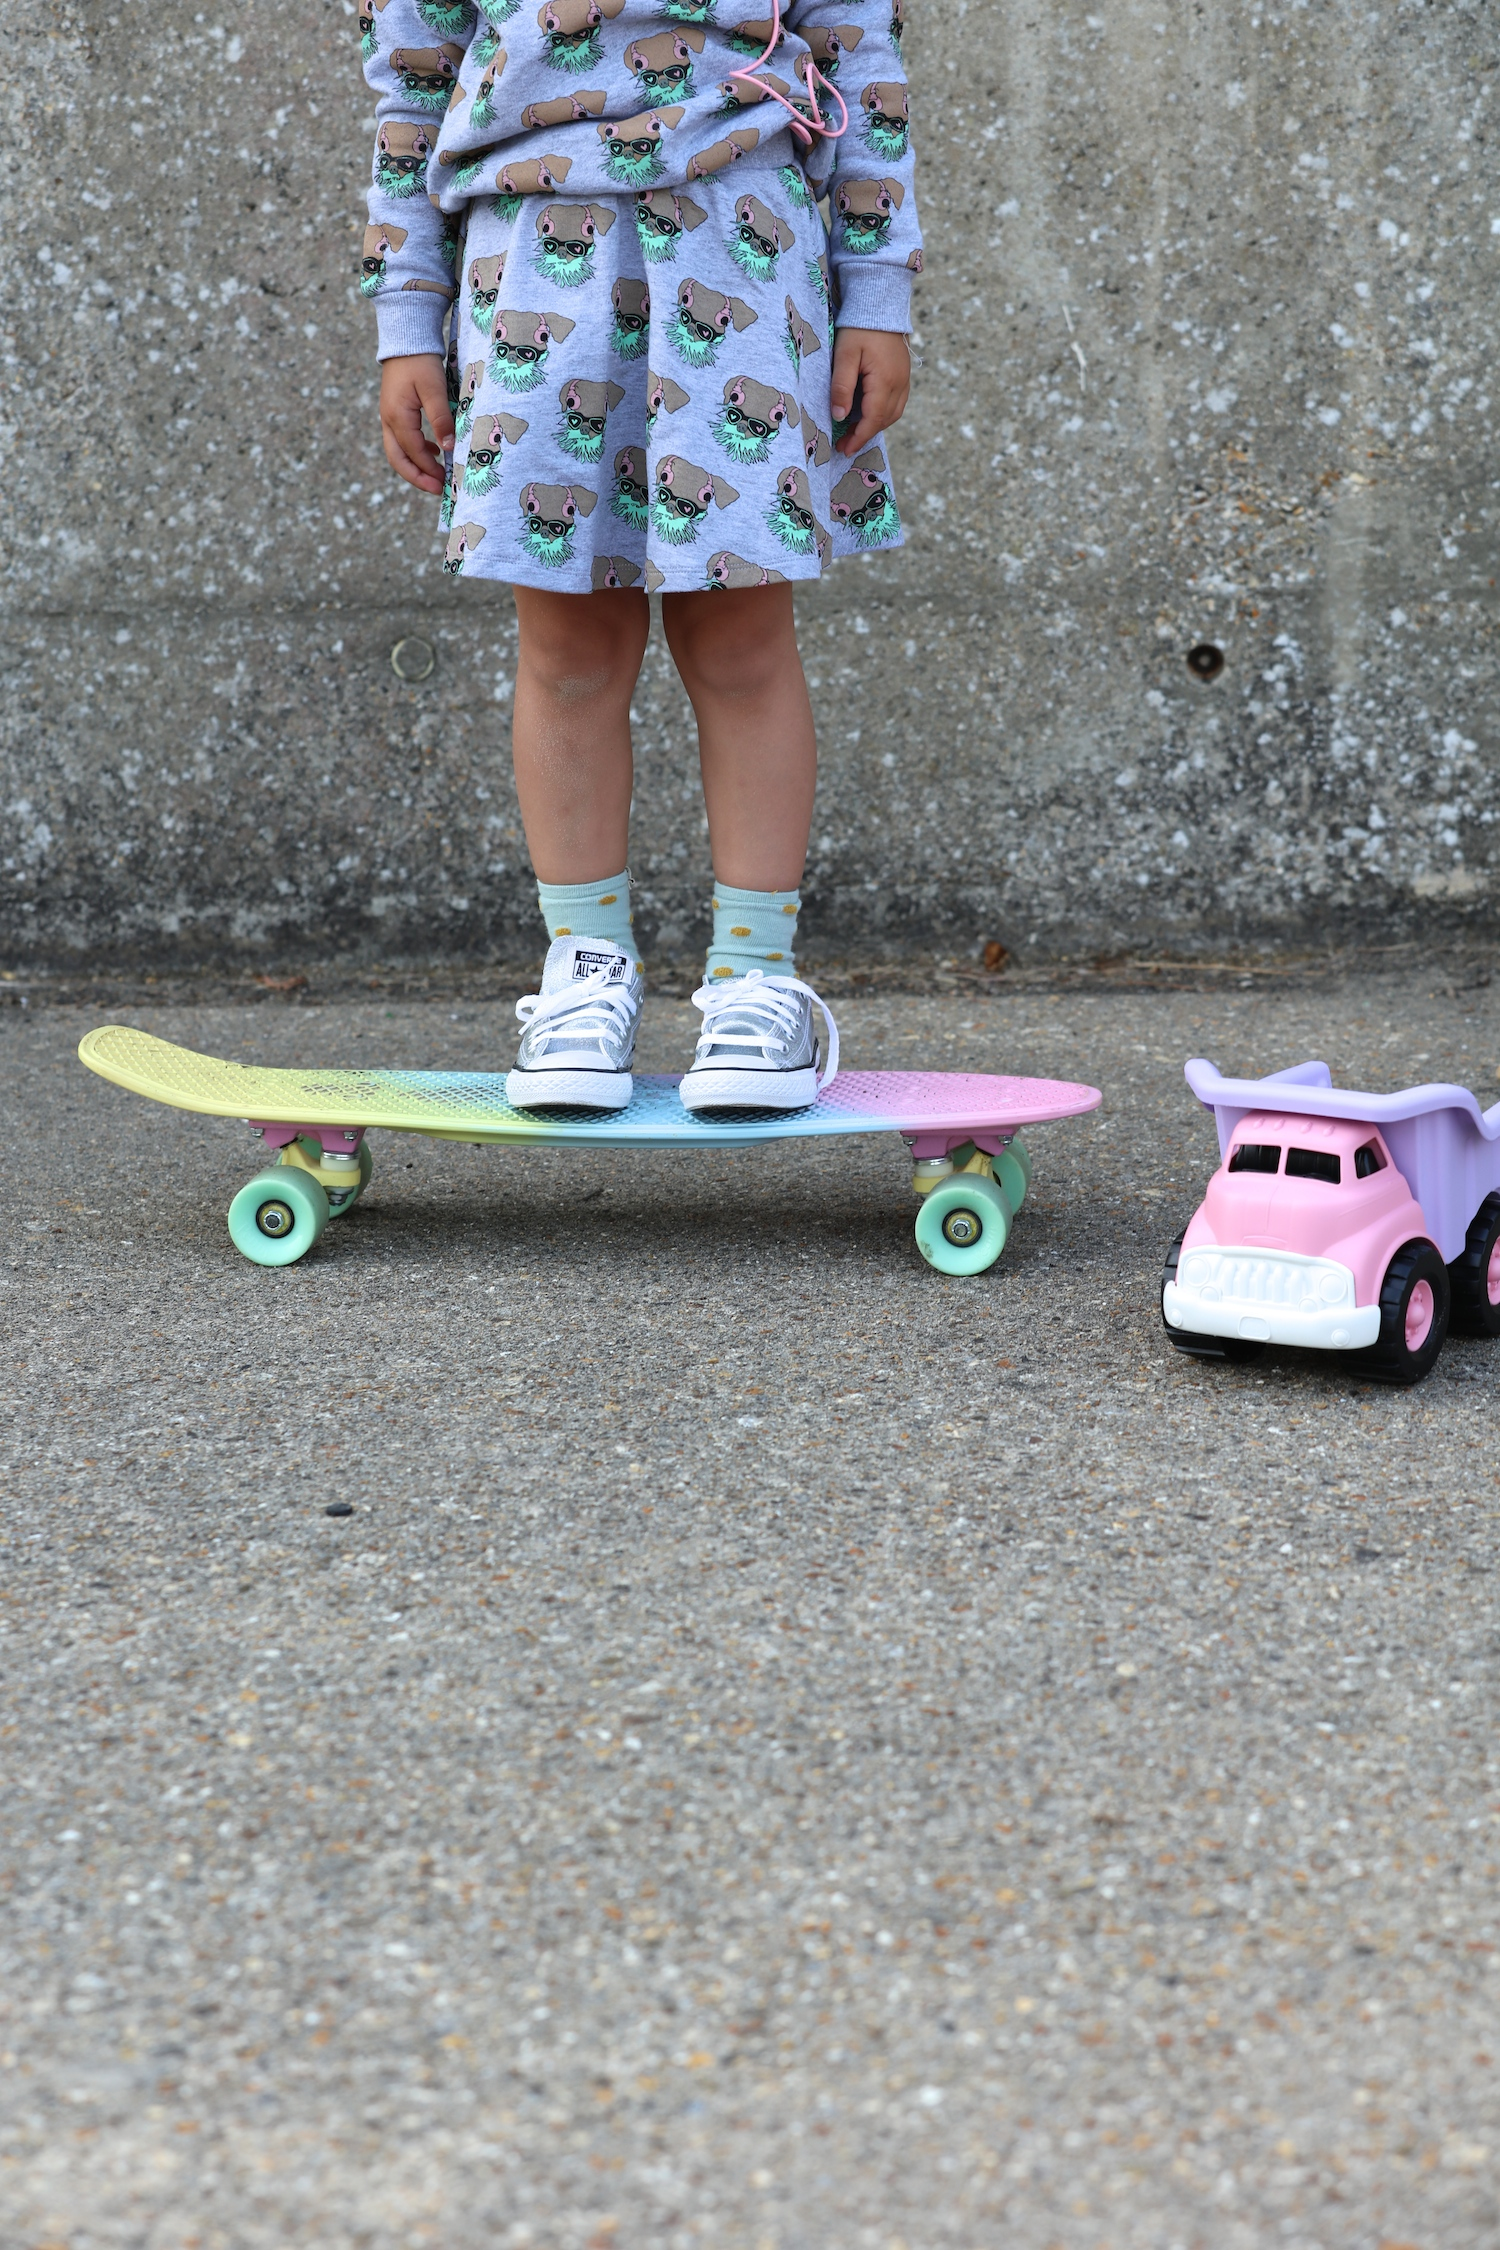 Gardner_and_the_gang_aw_16_kids_penny_skateboard